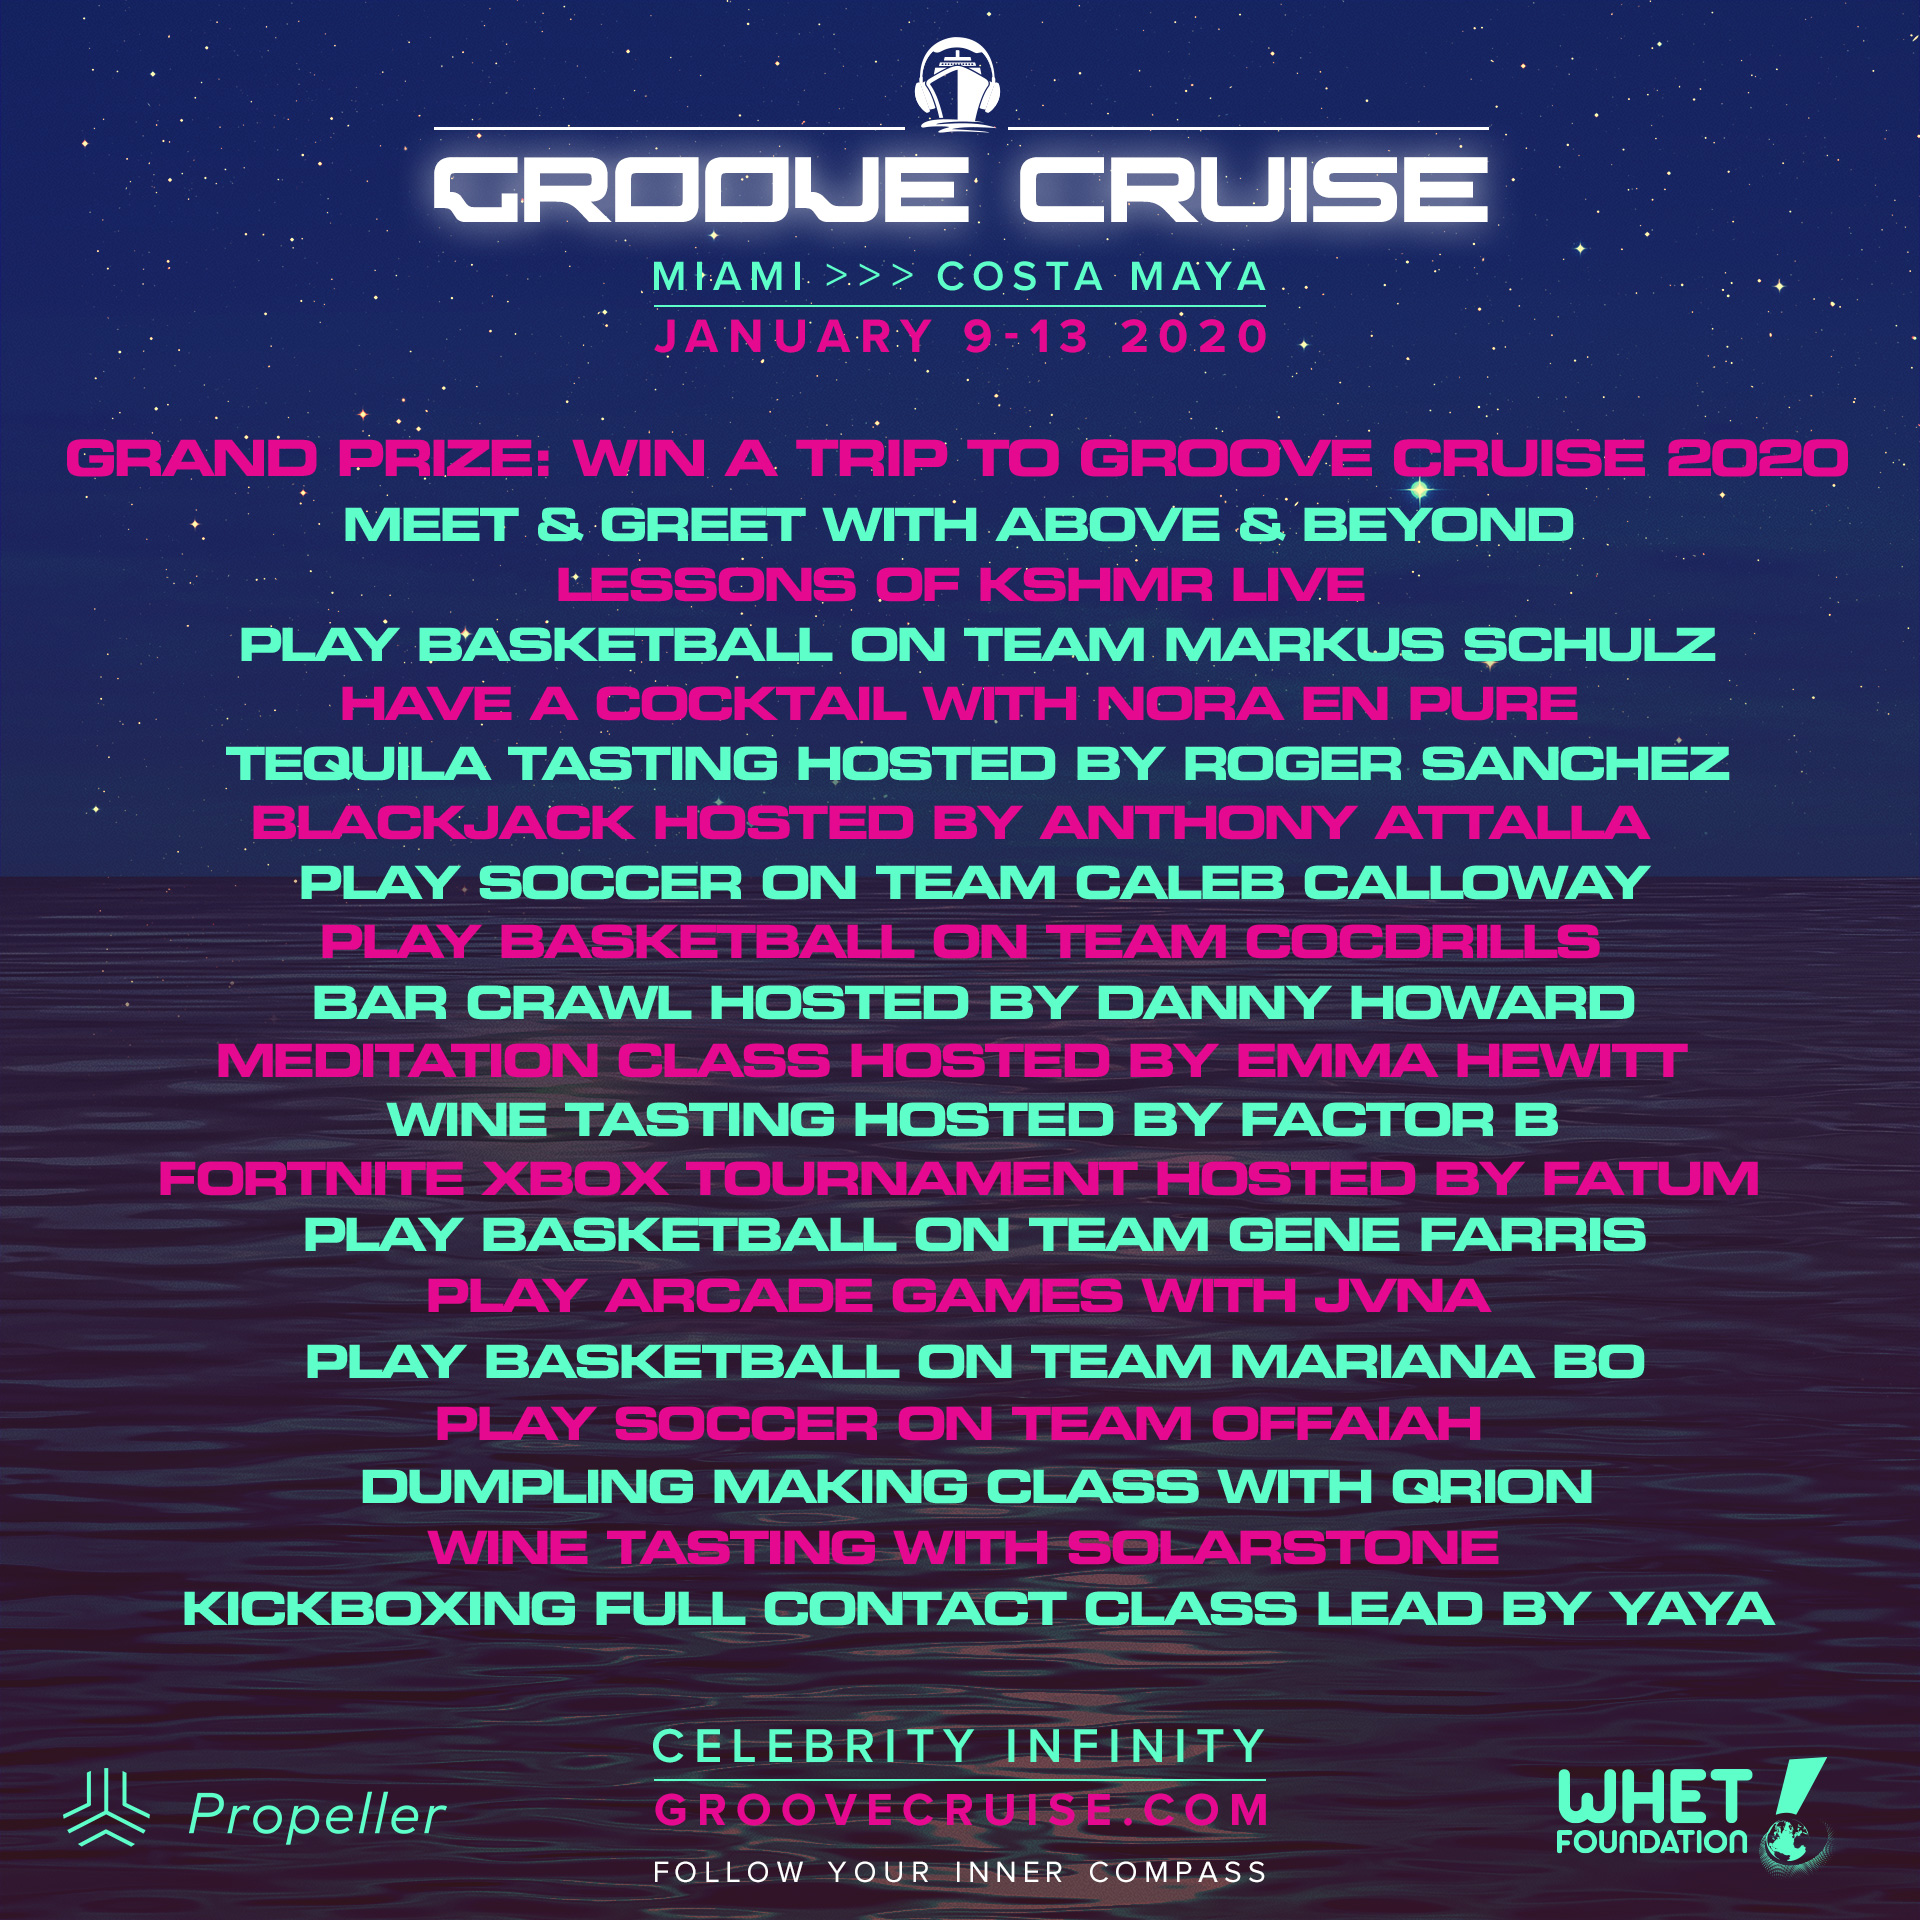 Groove Cruise Miami 2020 Artist Activities